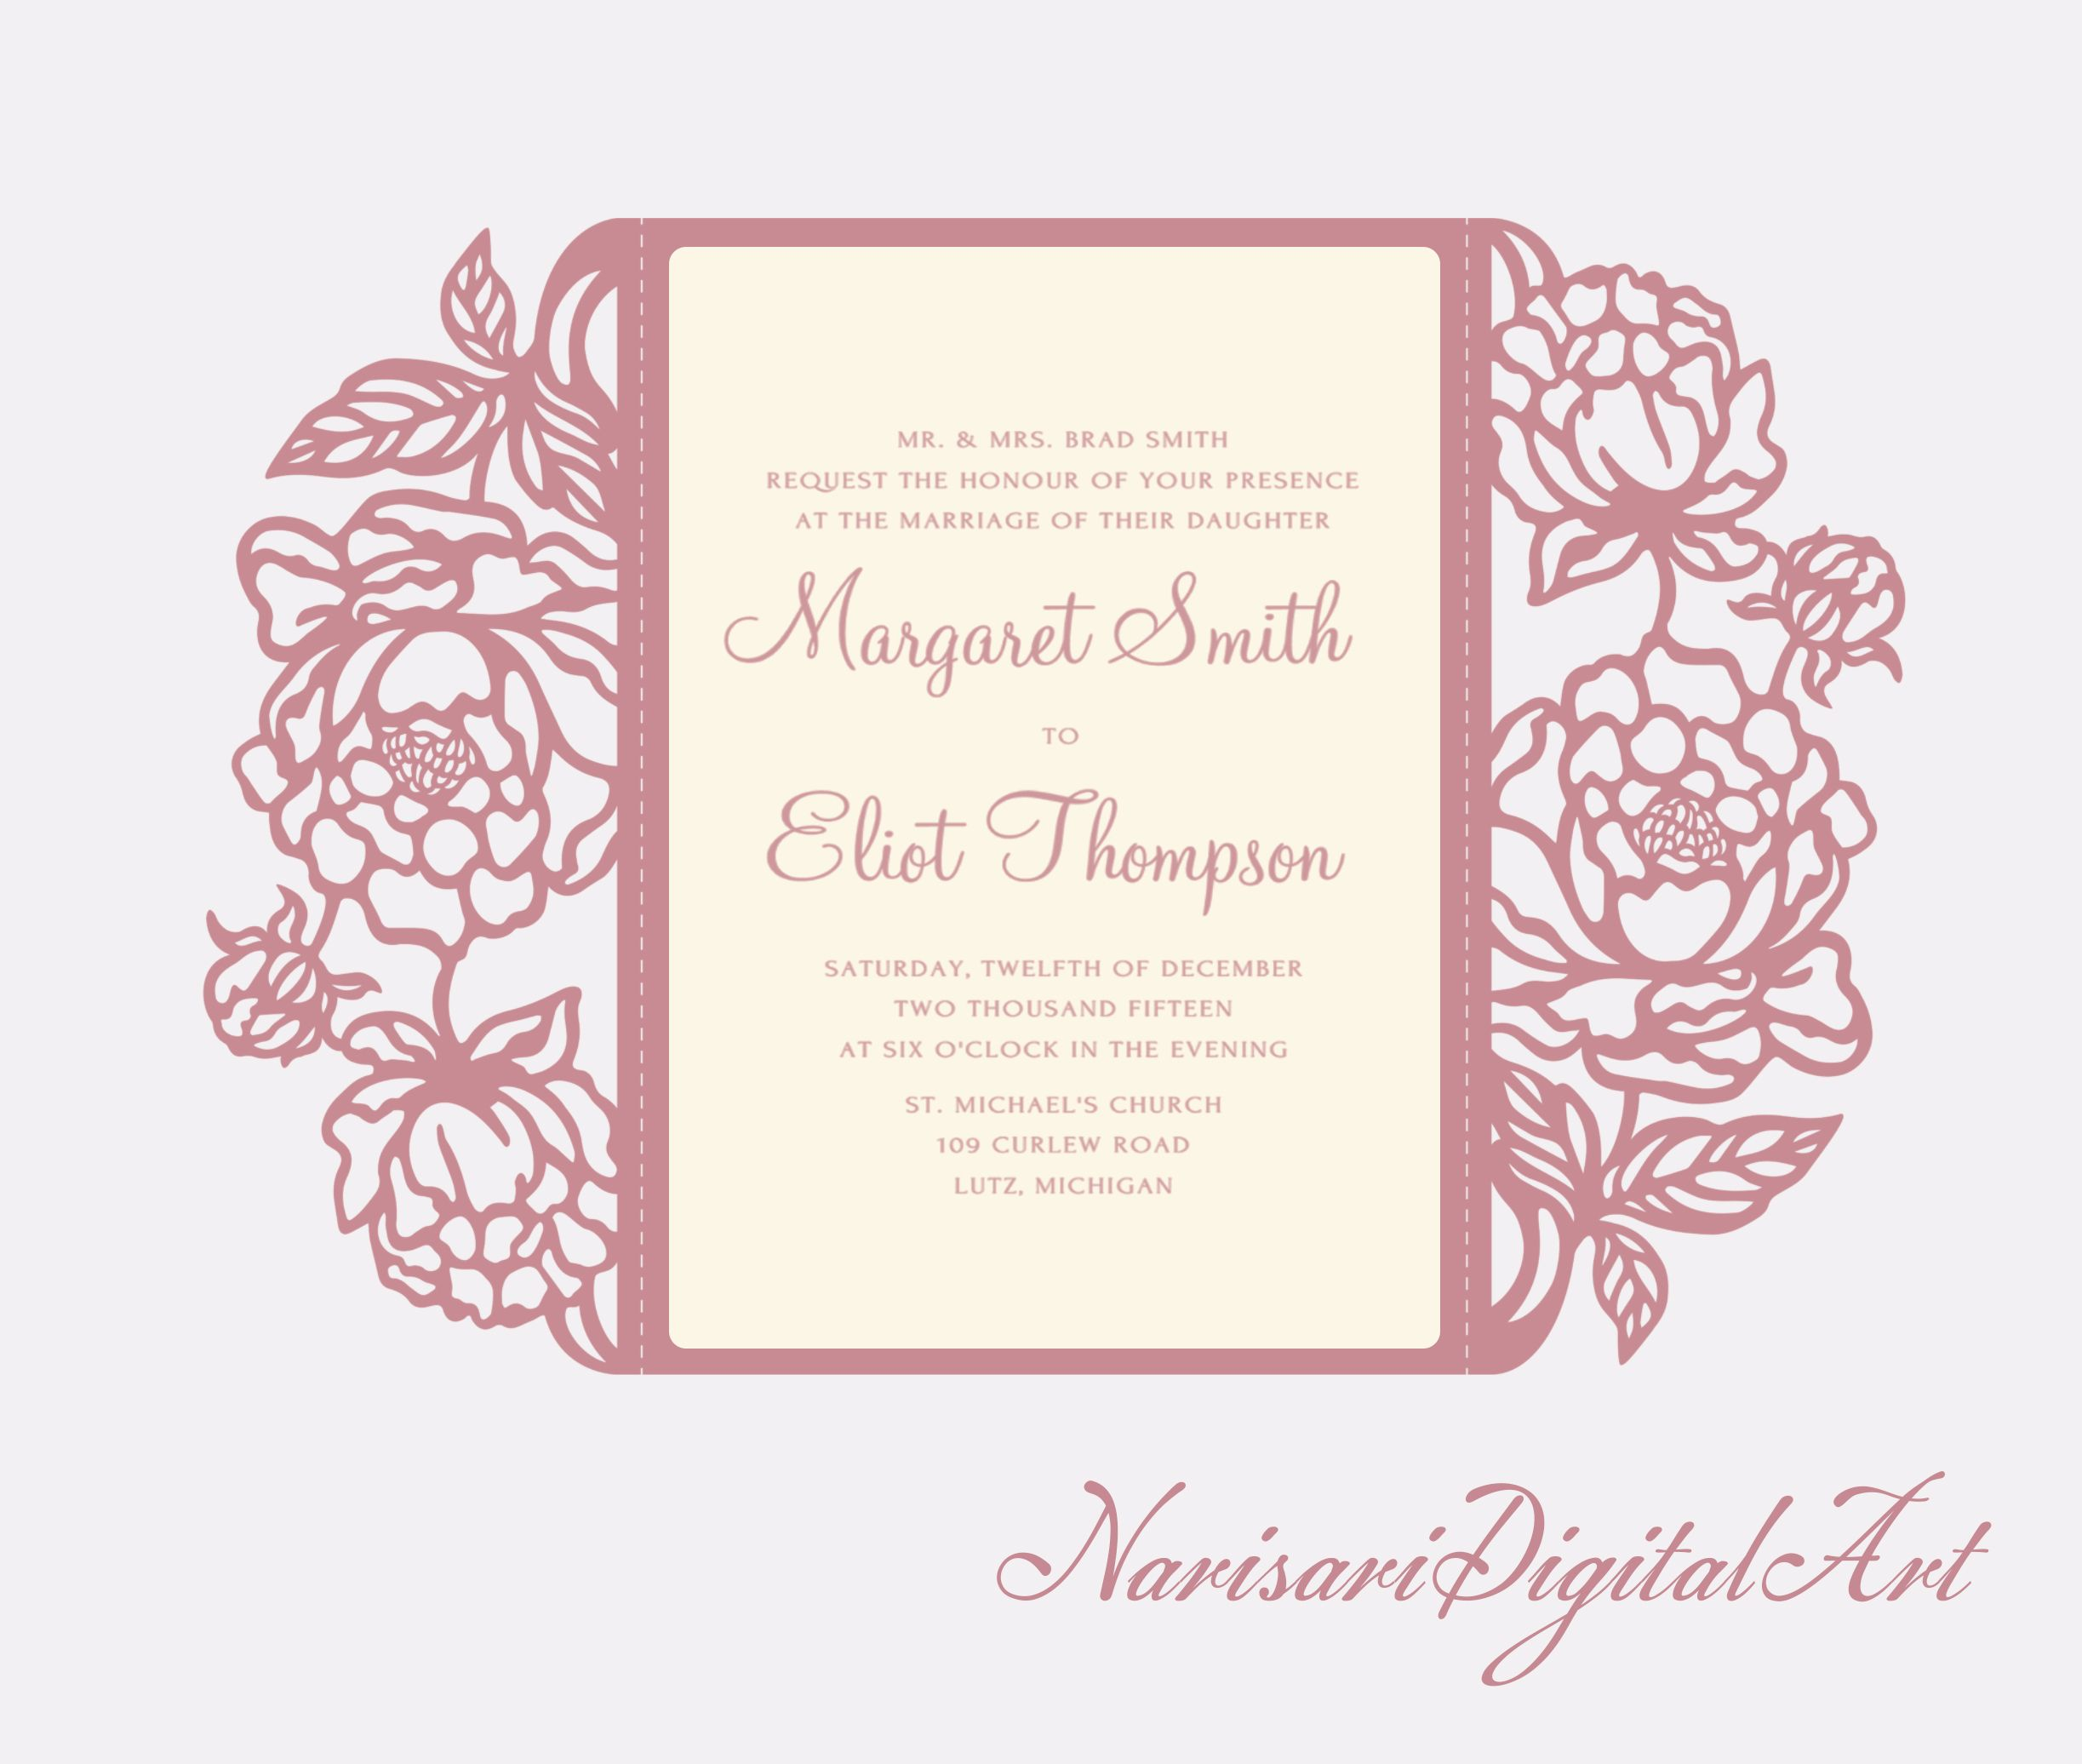 peonies cut wedding invitation 5x7 gate fold card template quinceanera invitation svg cutting. Black Bedroom Furniture Sets. Home Design Ideas